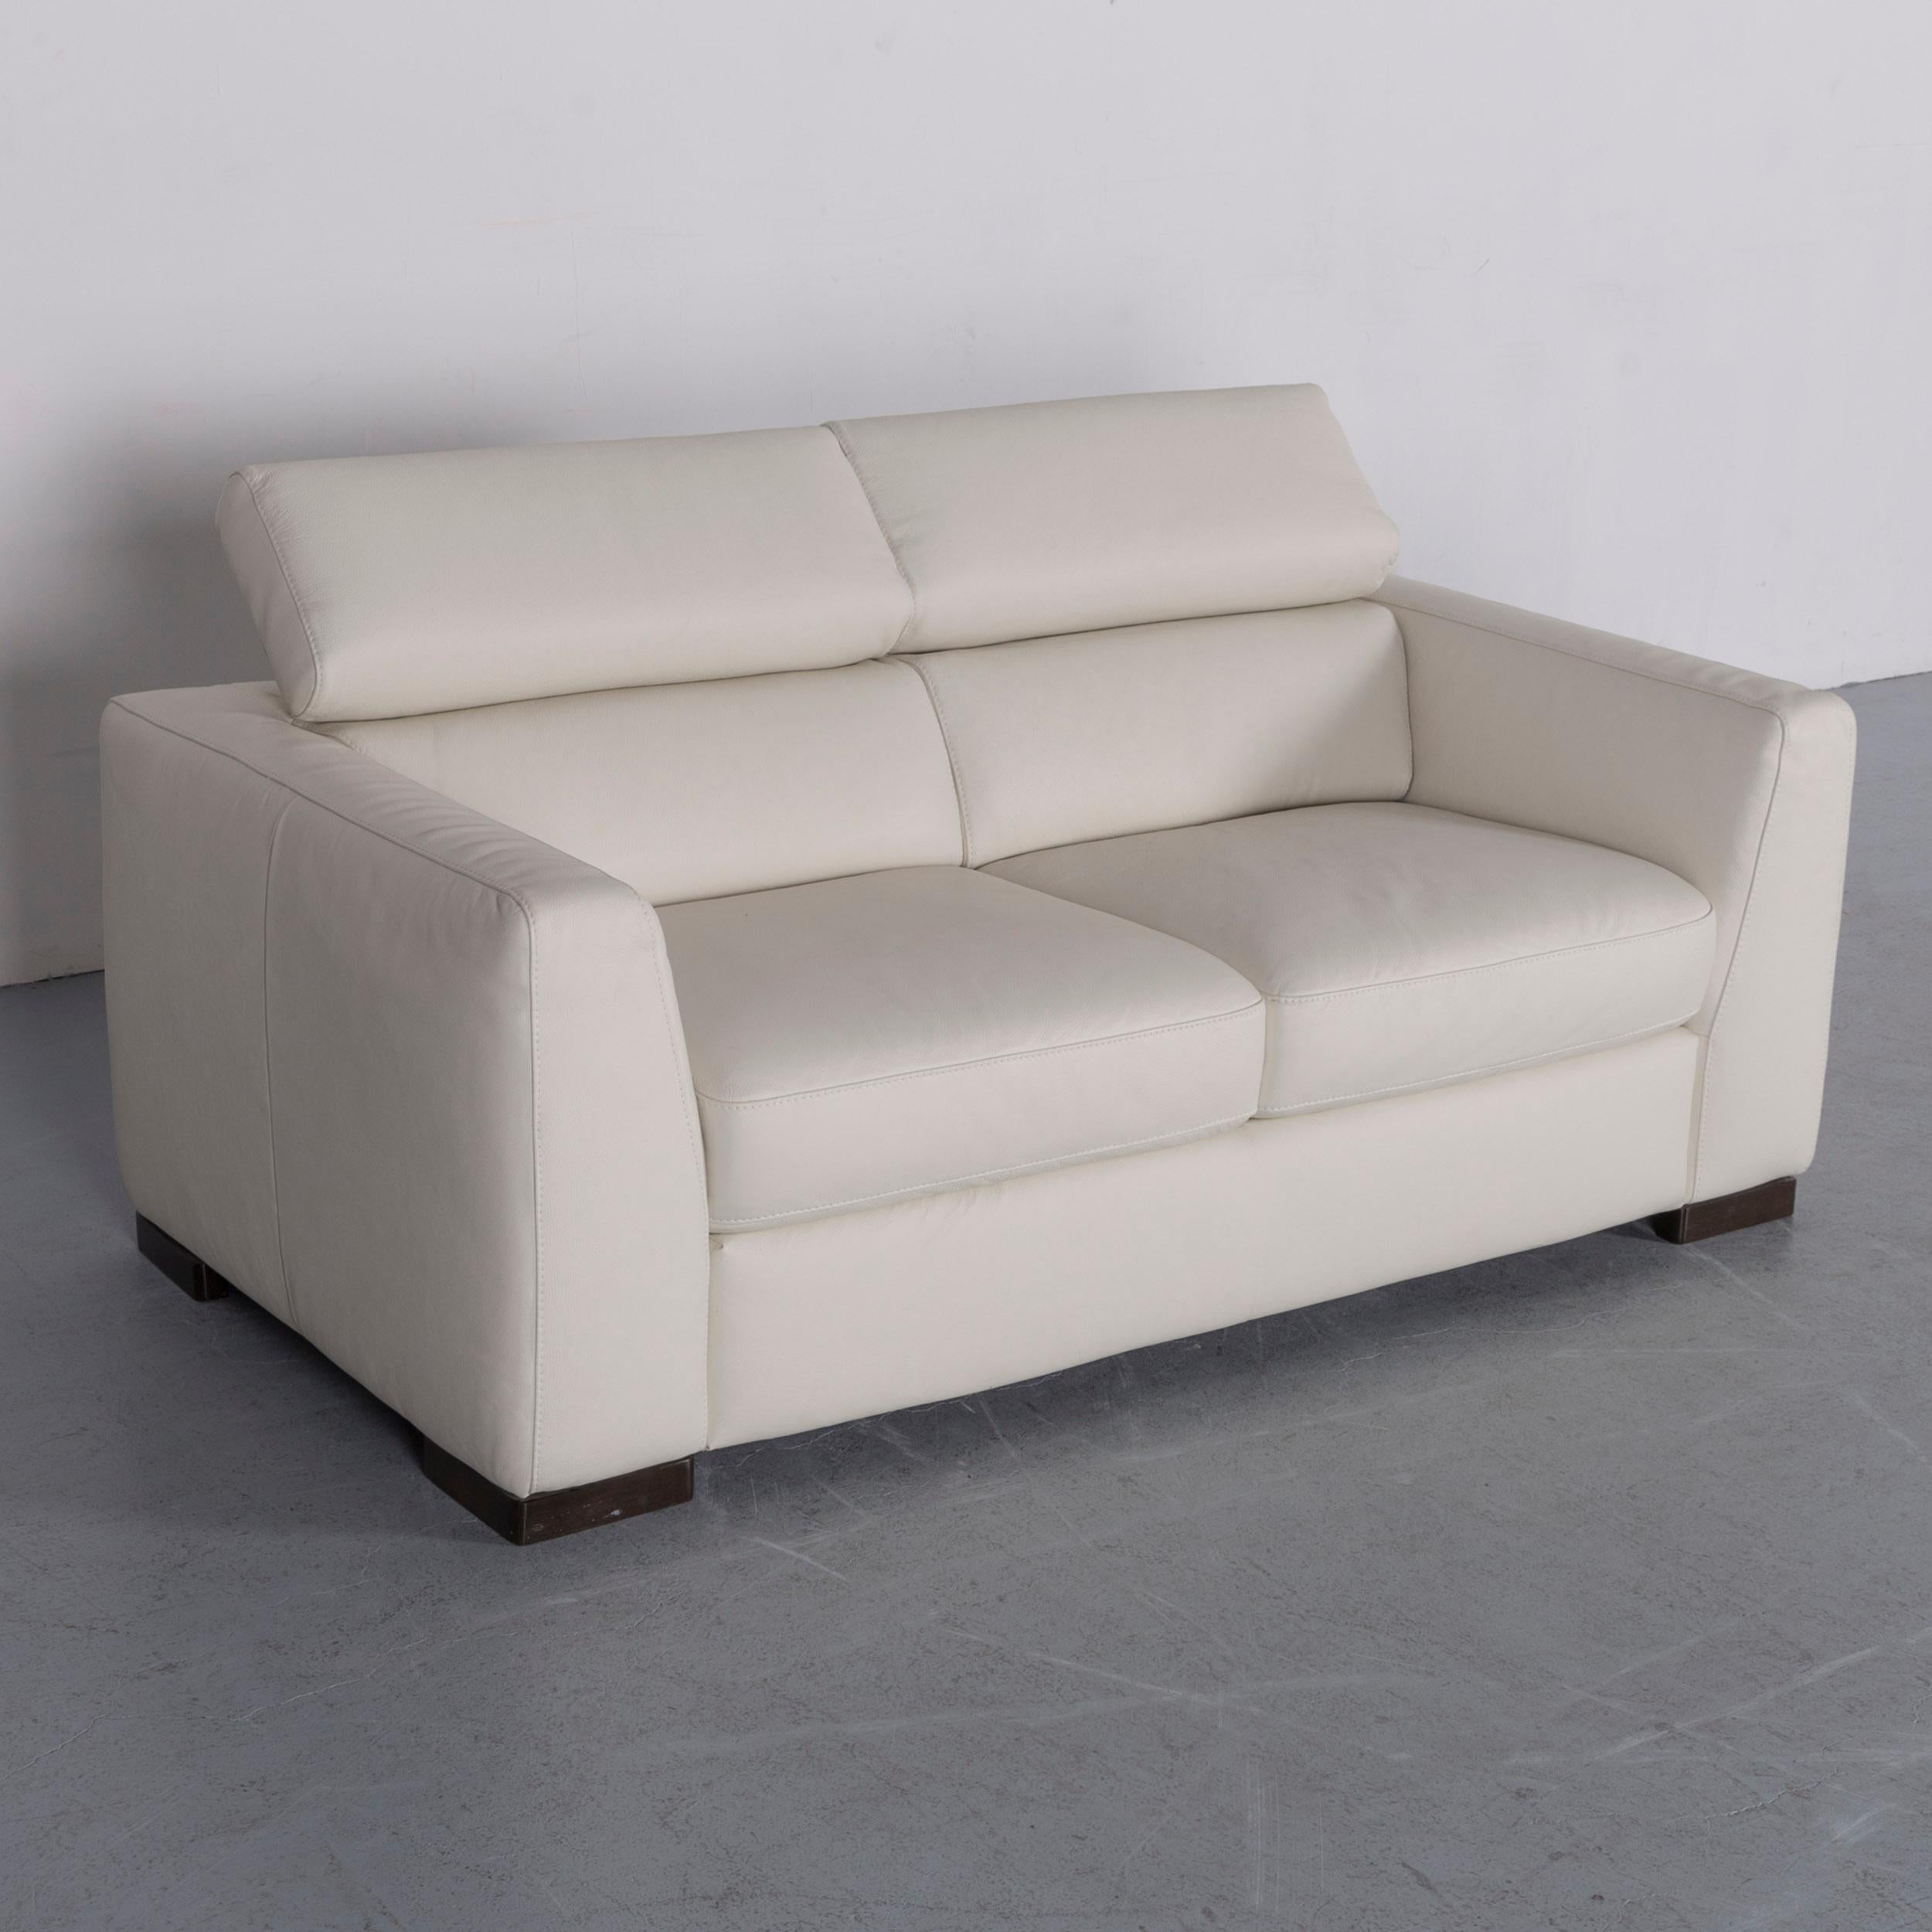 Italian Italsofa Designer Leather Sofa Crème White Modern Two Seat Couch  For Sale